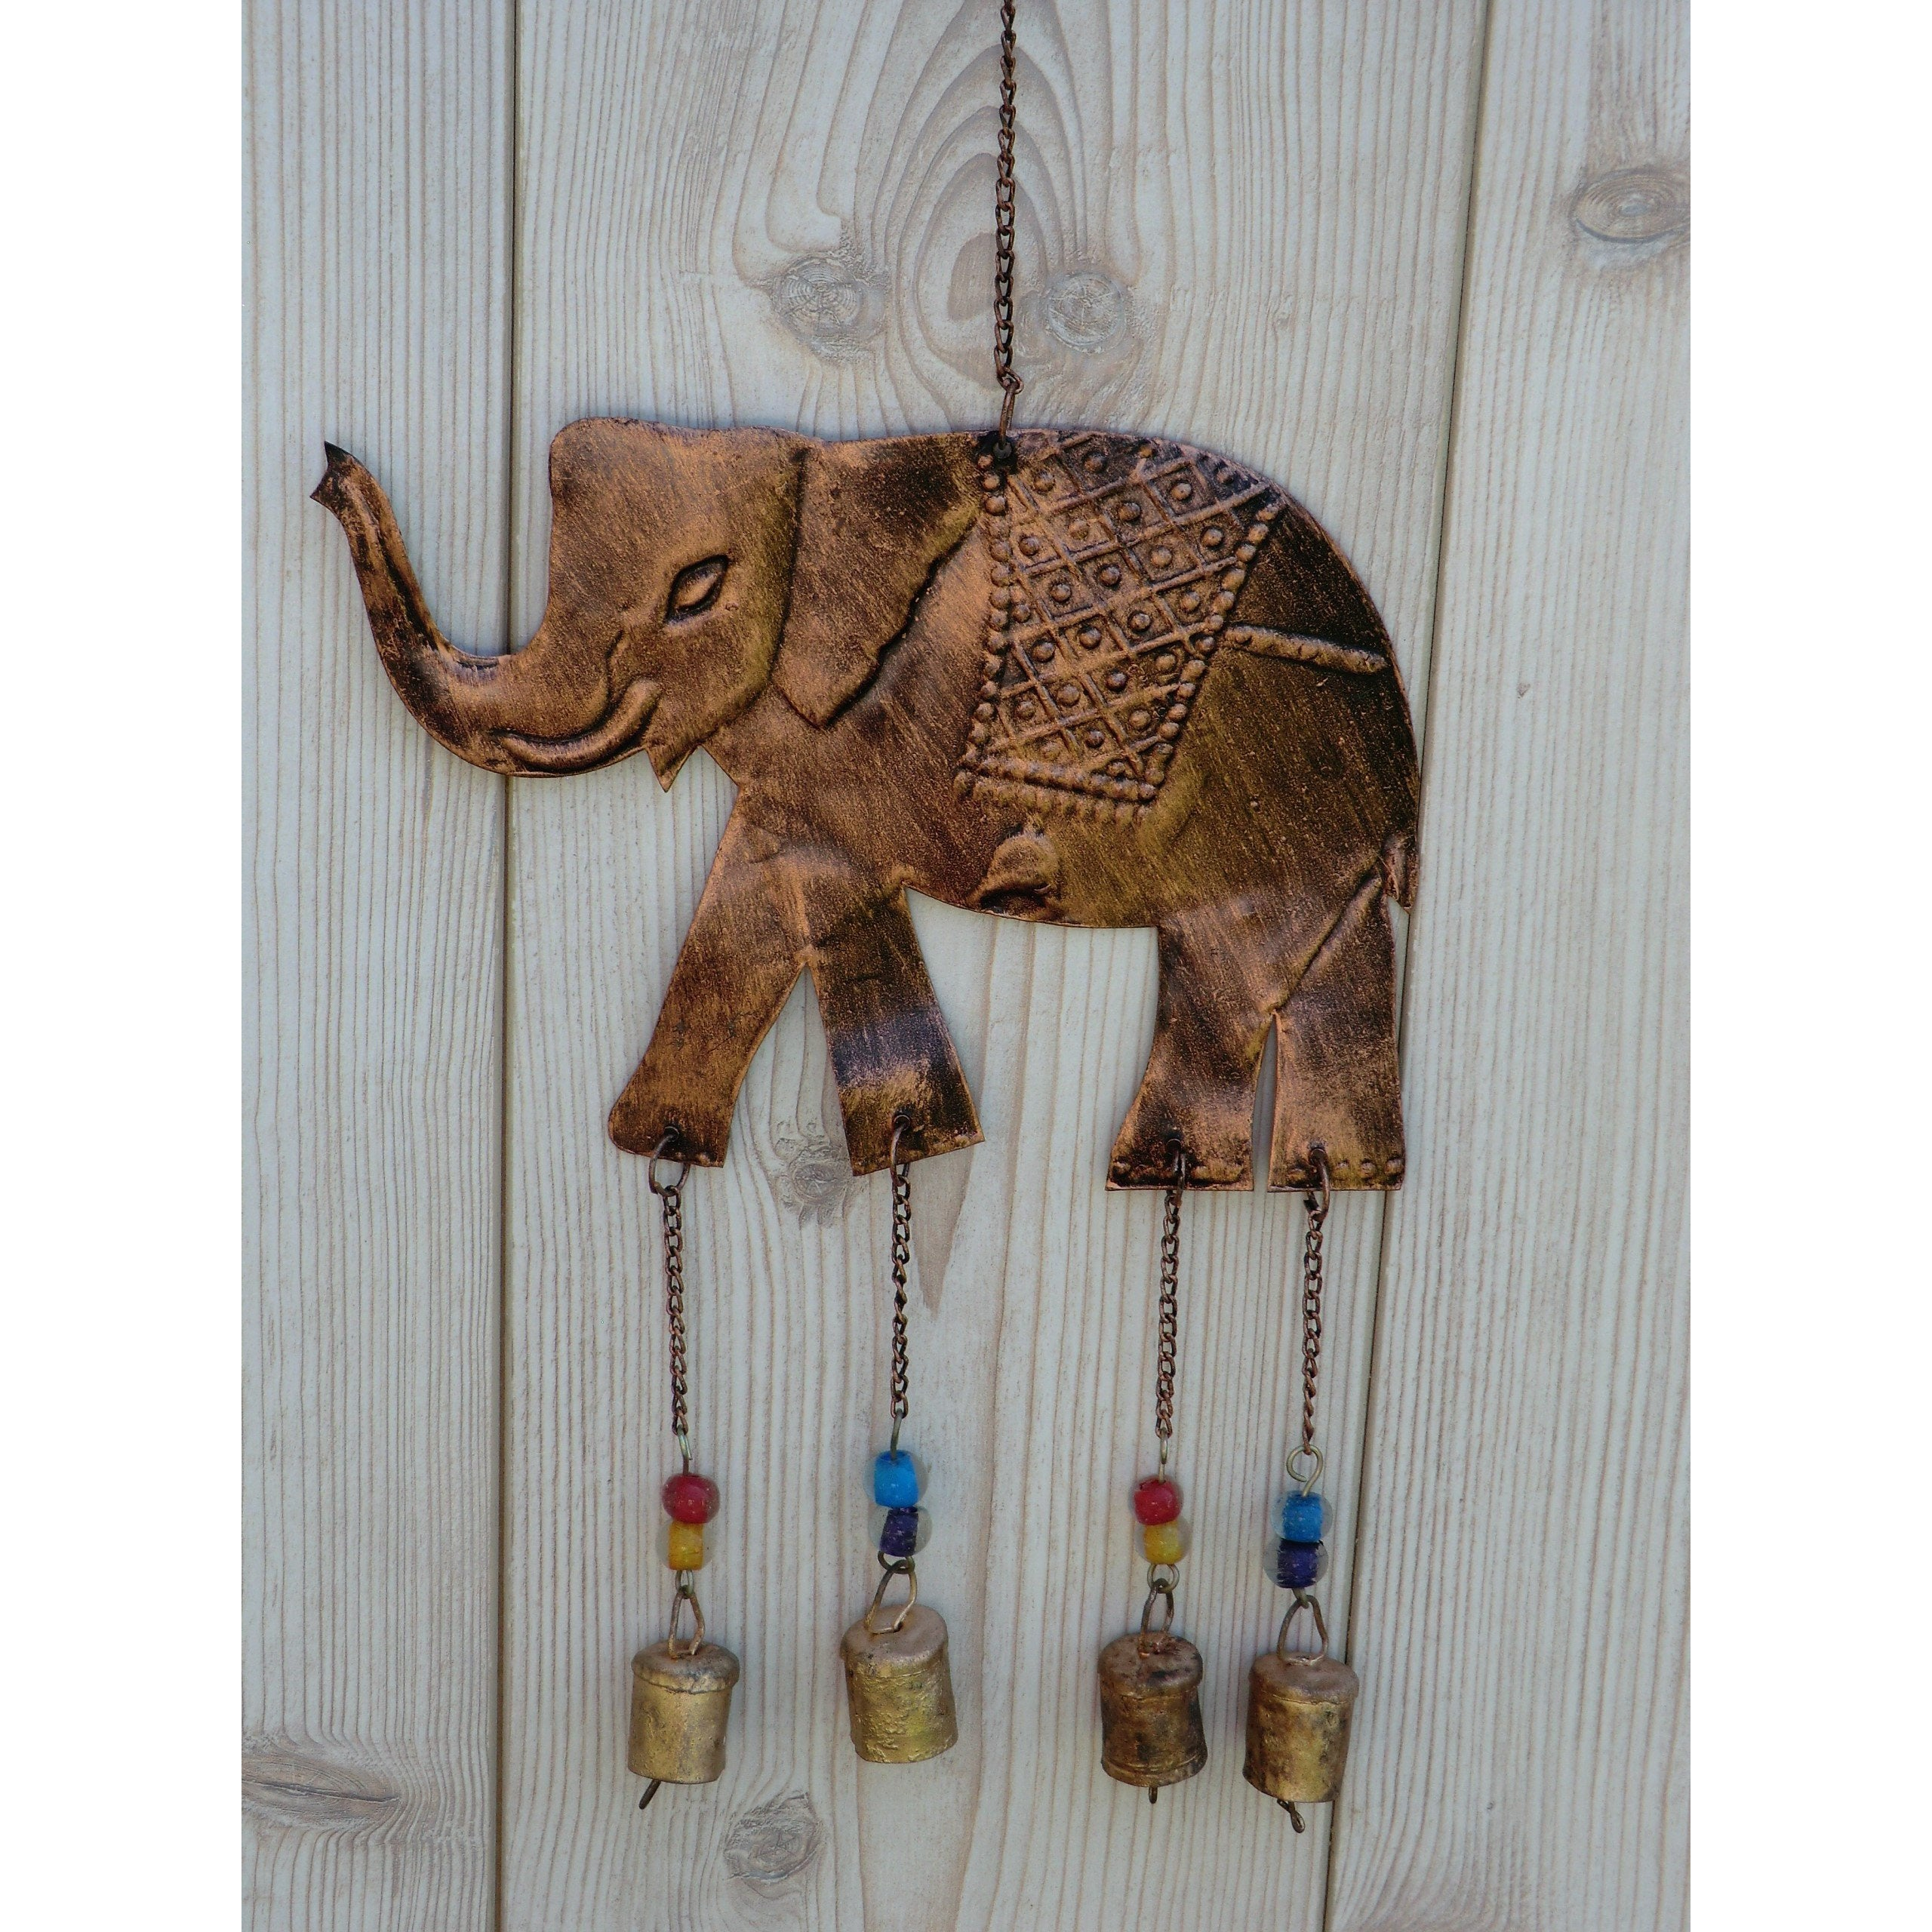 Metal Elephant Windchime - Matico